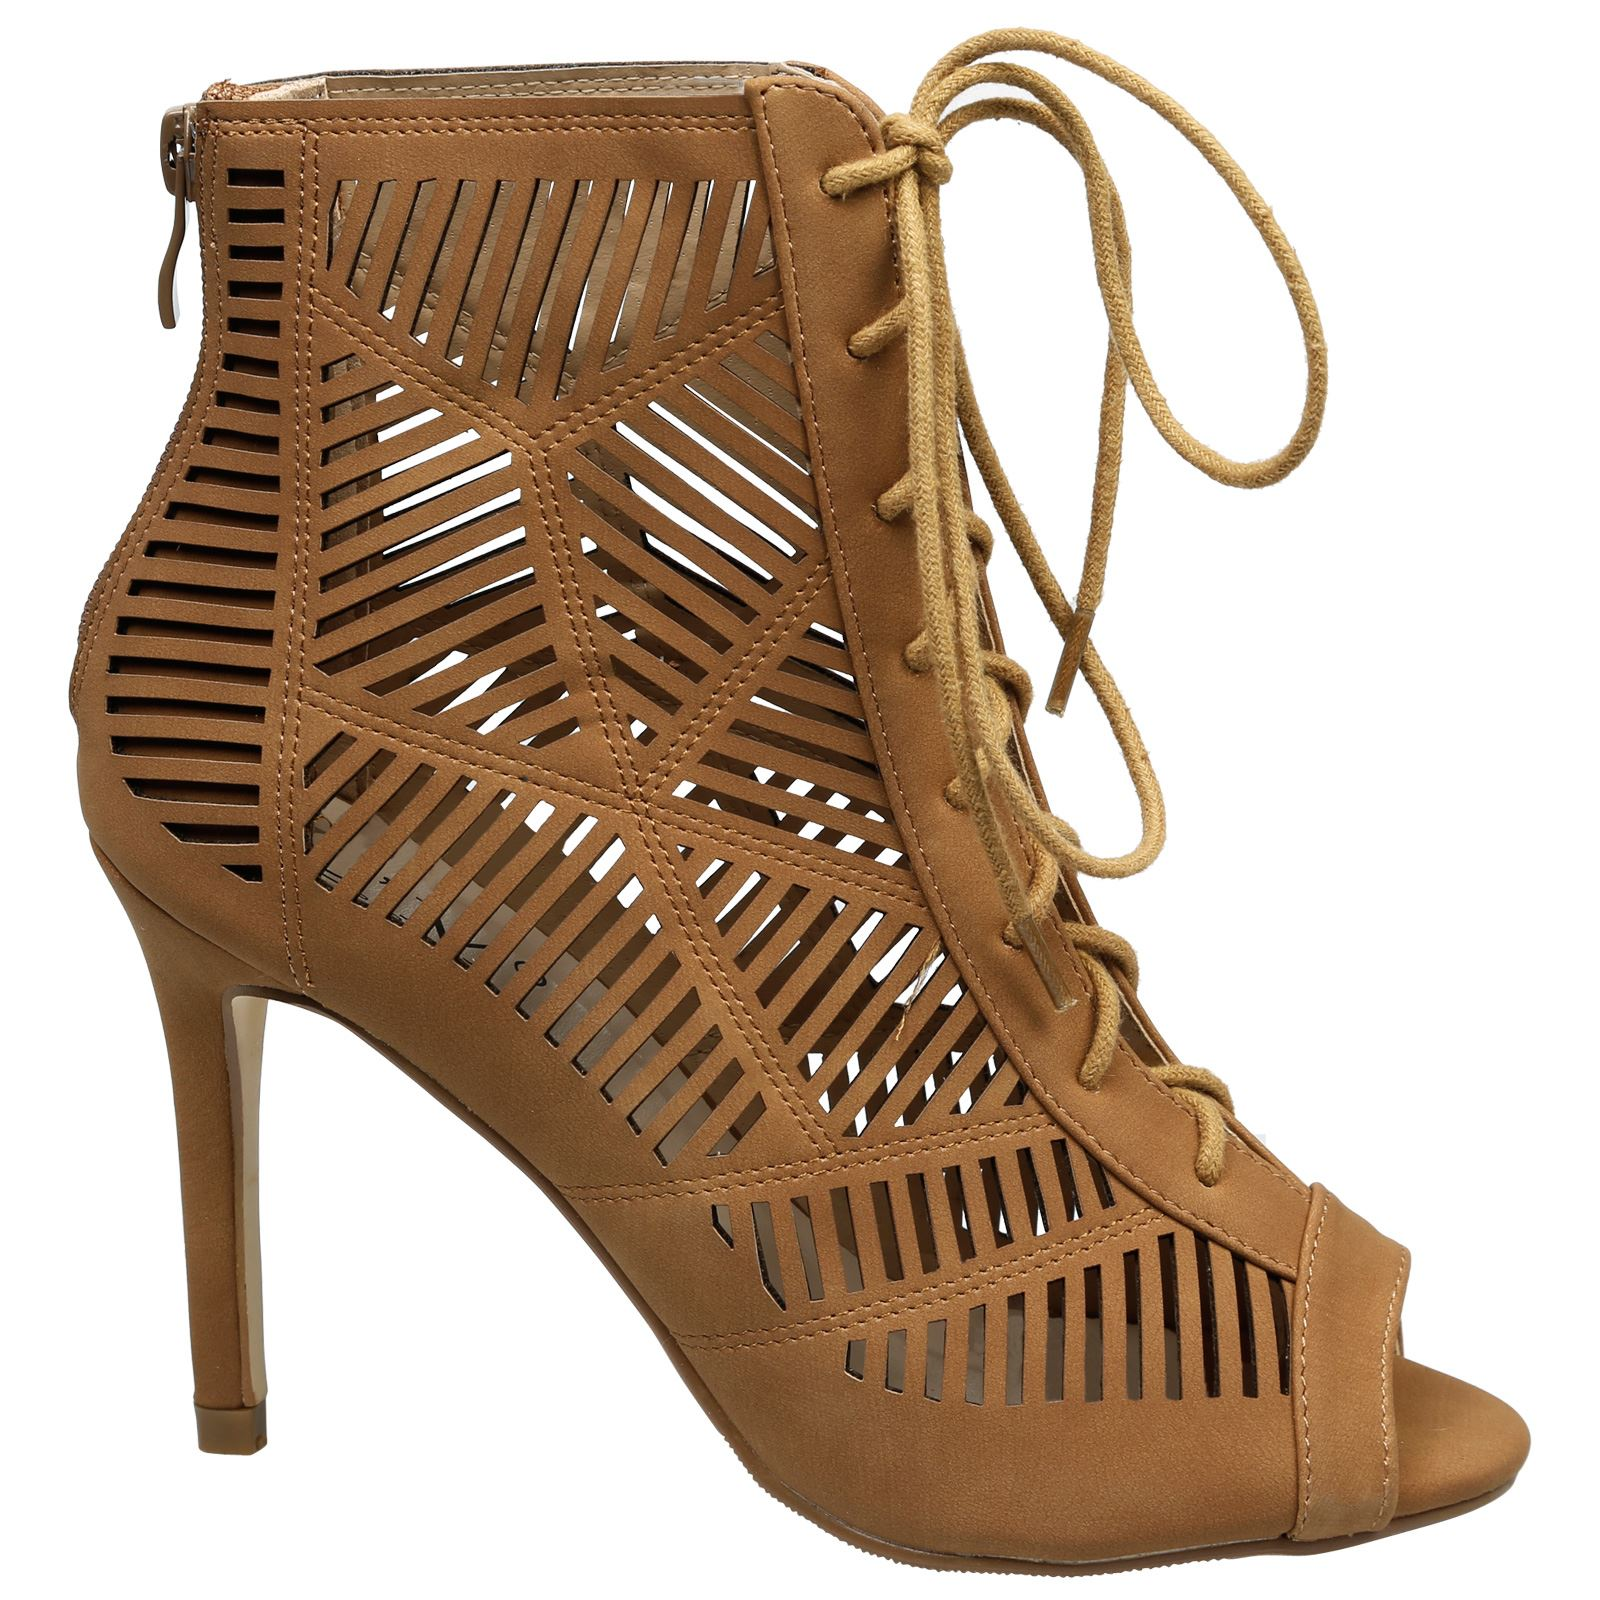 Anais-Womens-High-Heels-Stilettos-Lace-Up-Peep-Toe-Ankle-Boots-Ladies-Shoes-Size thumbnail 7